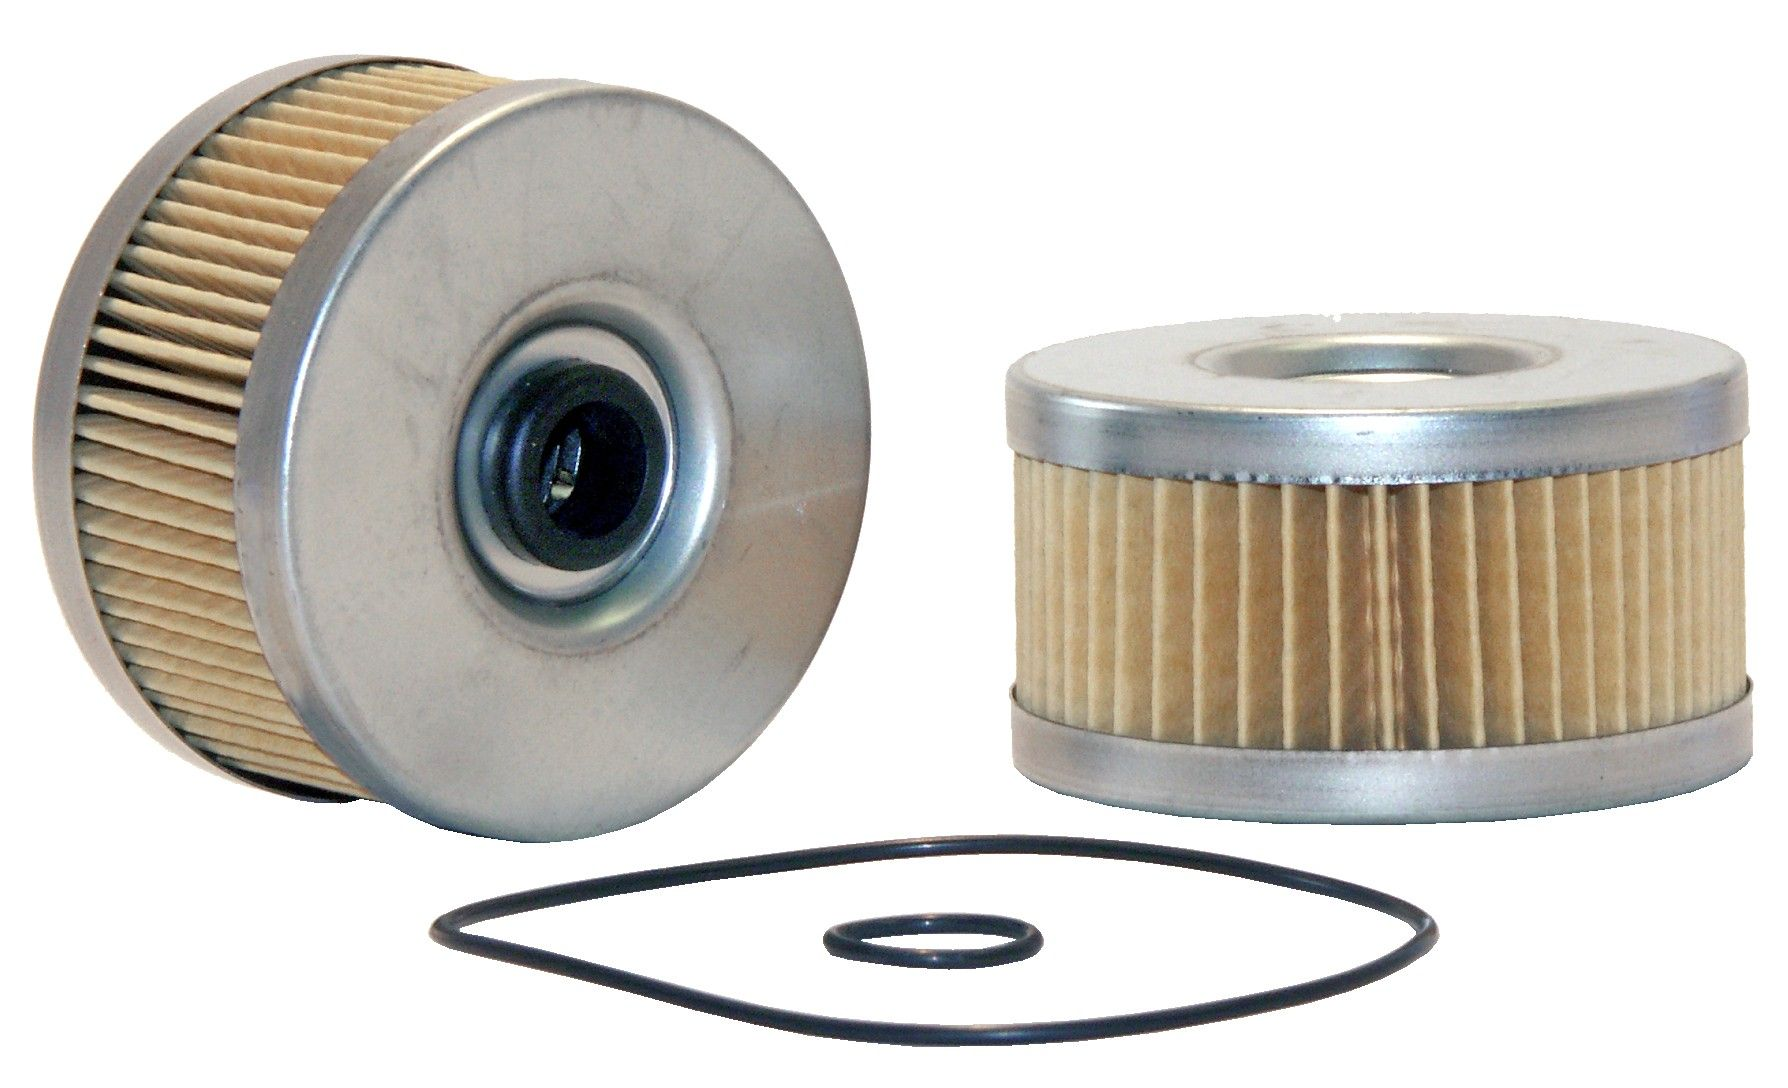 1986 ford bronco ii fuel filter 6 cyl 2 9l (wix 33268)